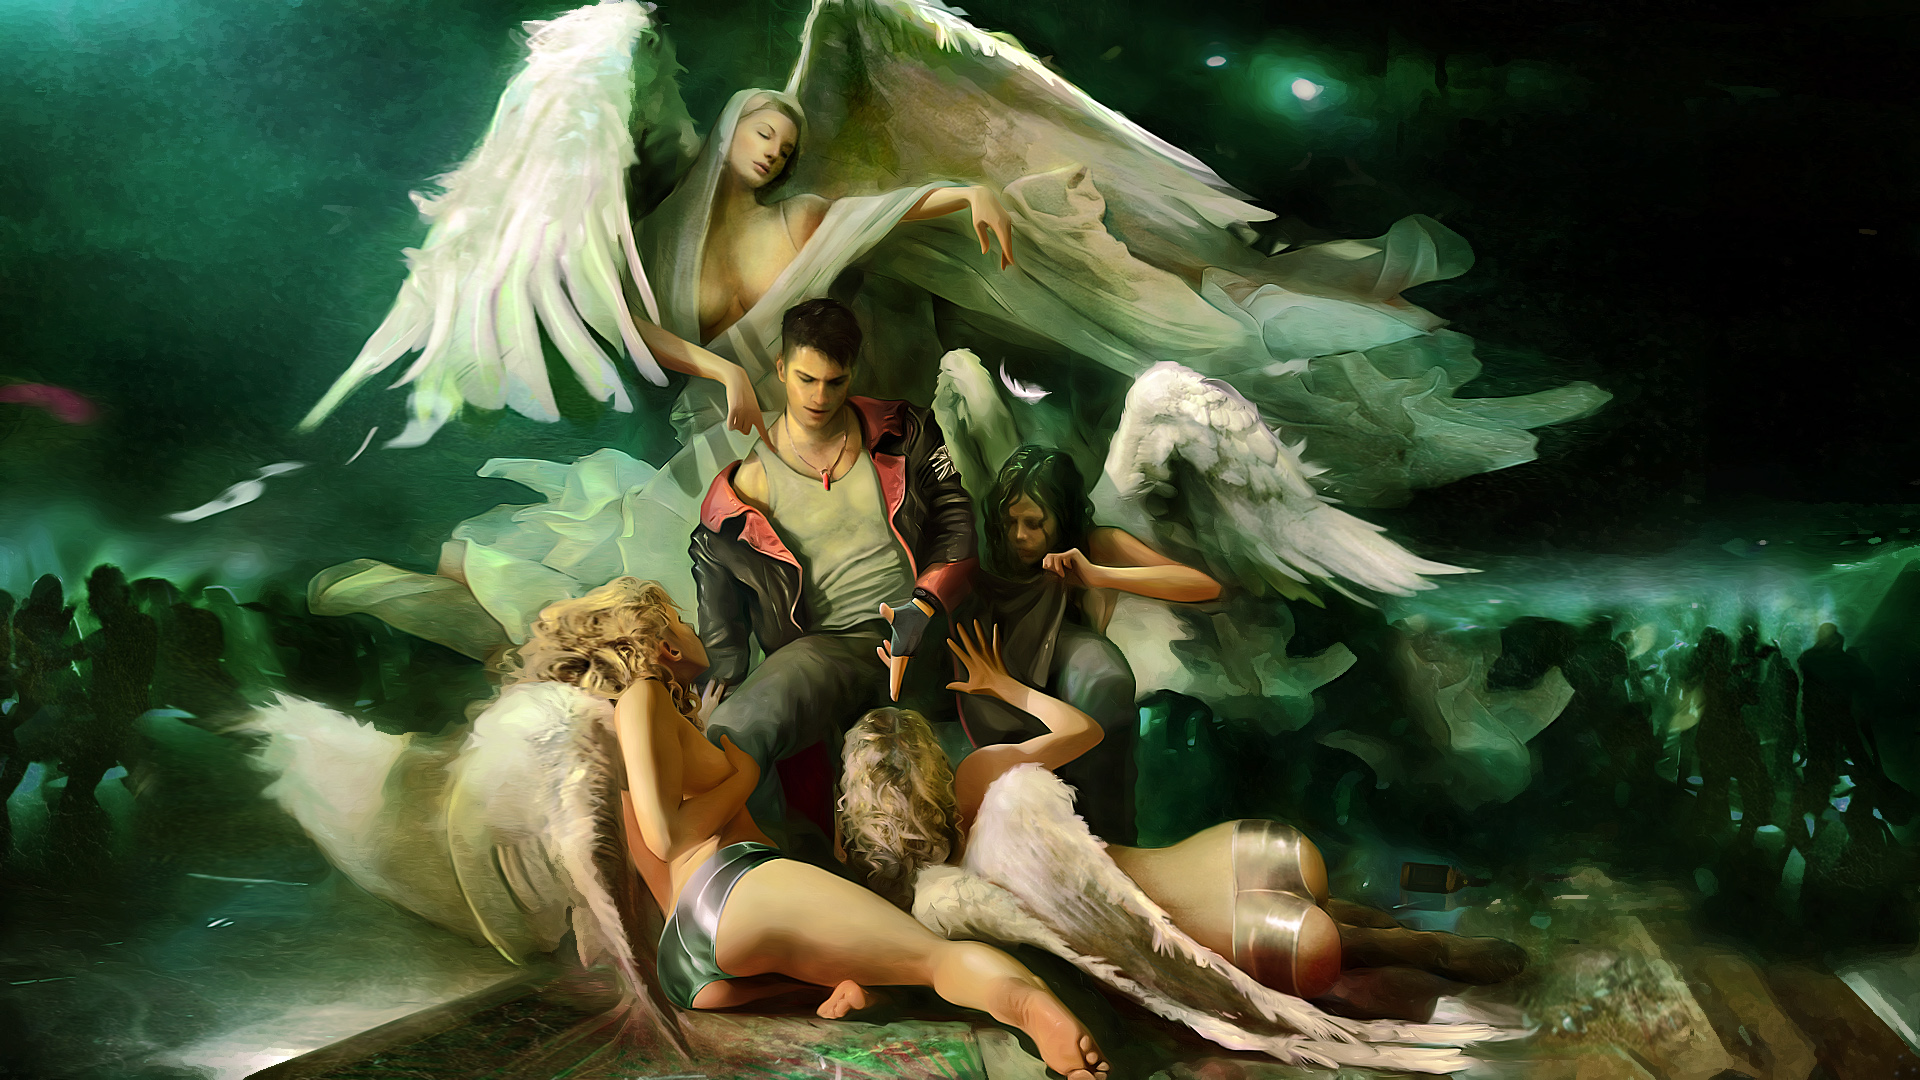 devil may cry wallpapers hd 1080pjpg 1920x1080